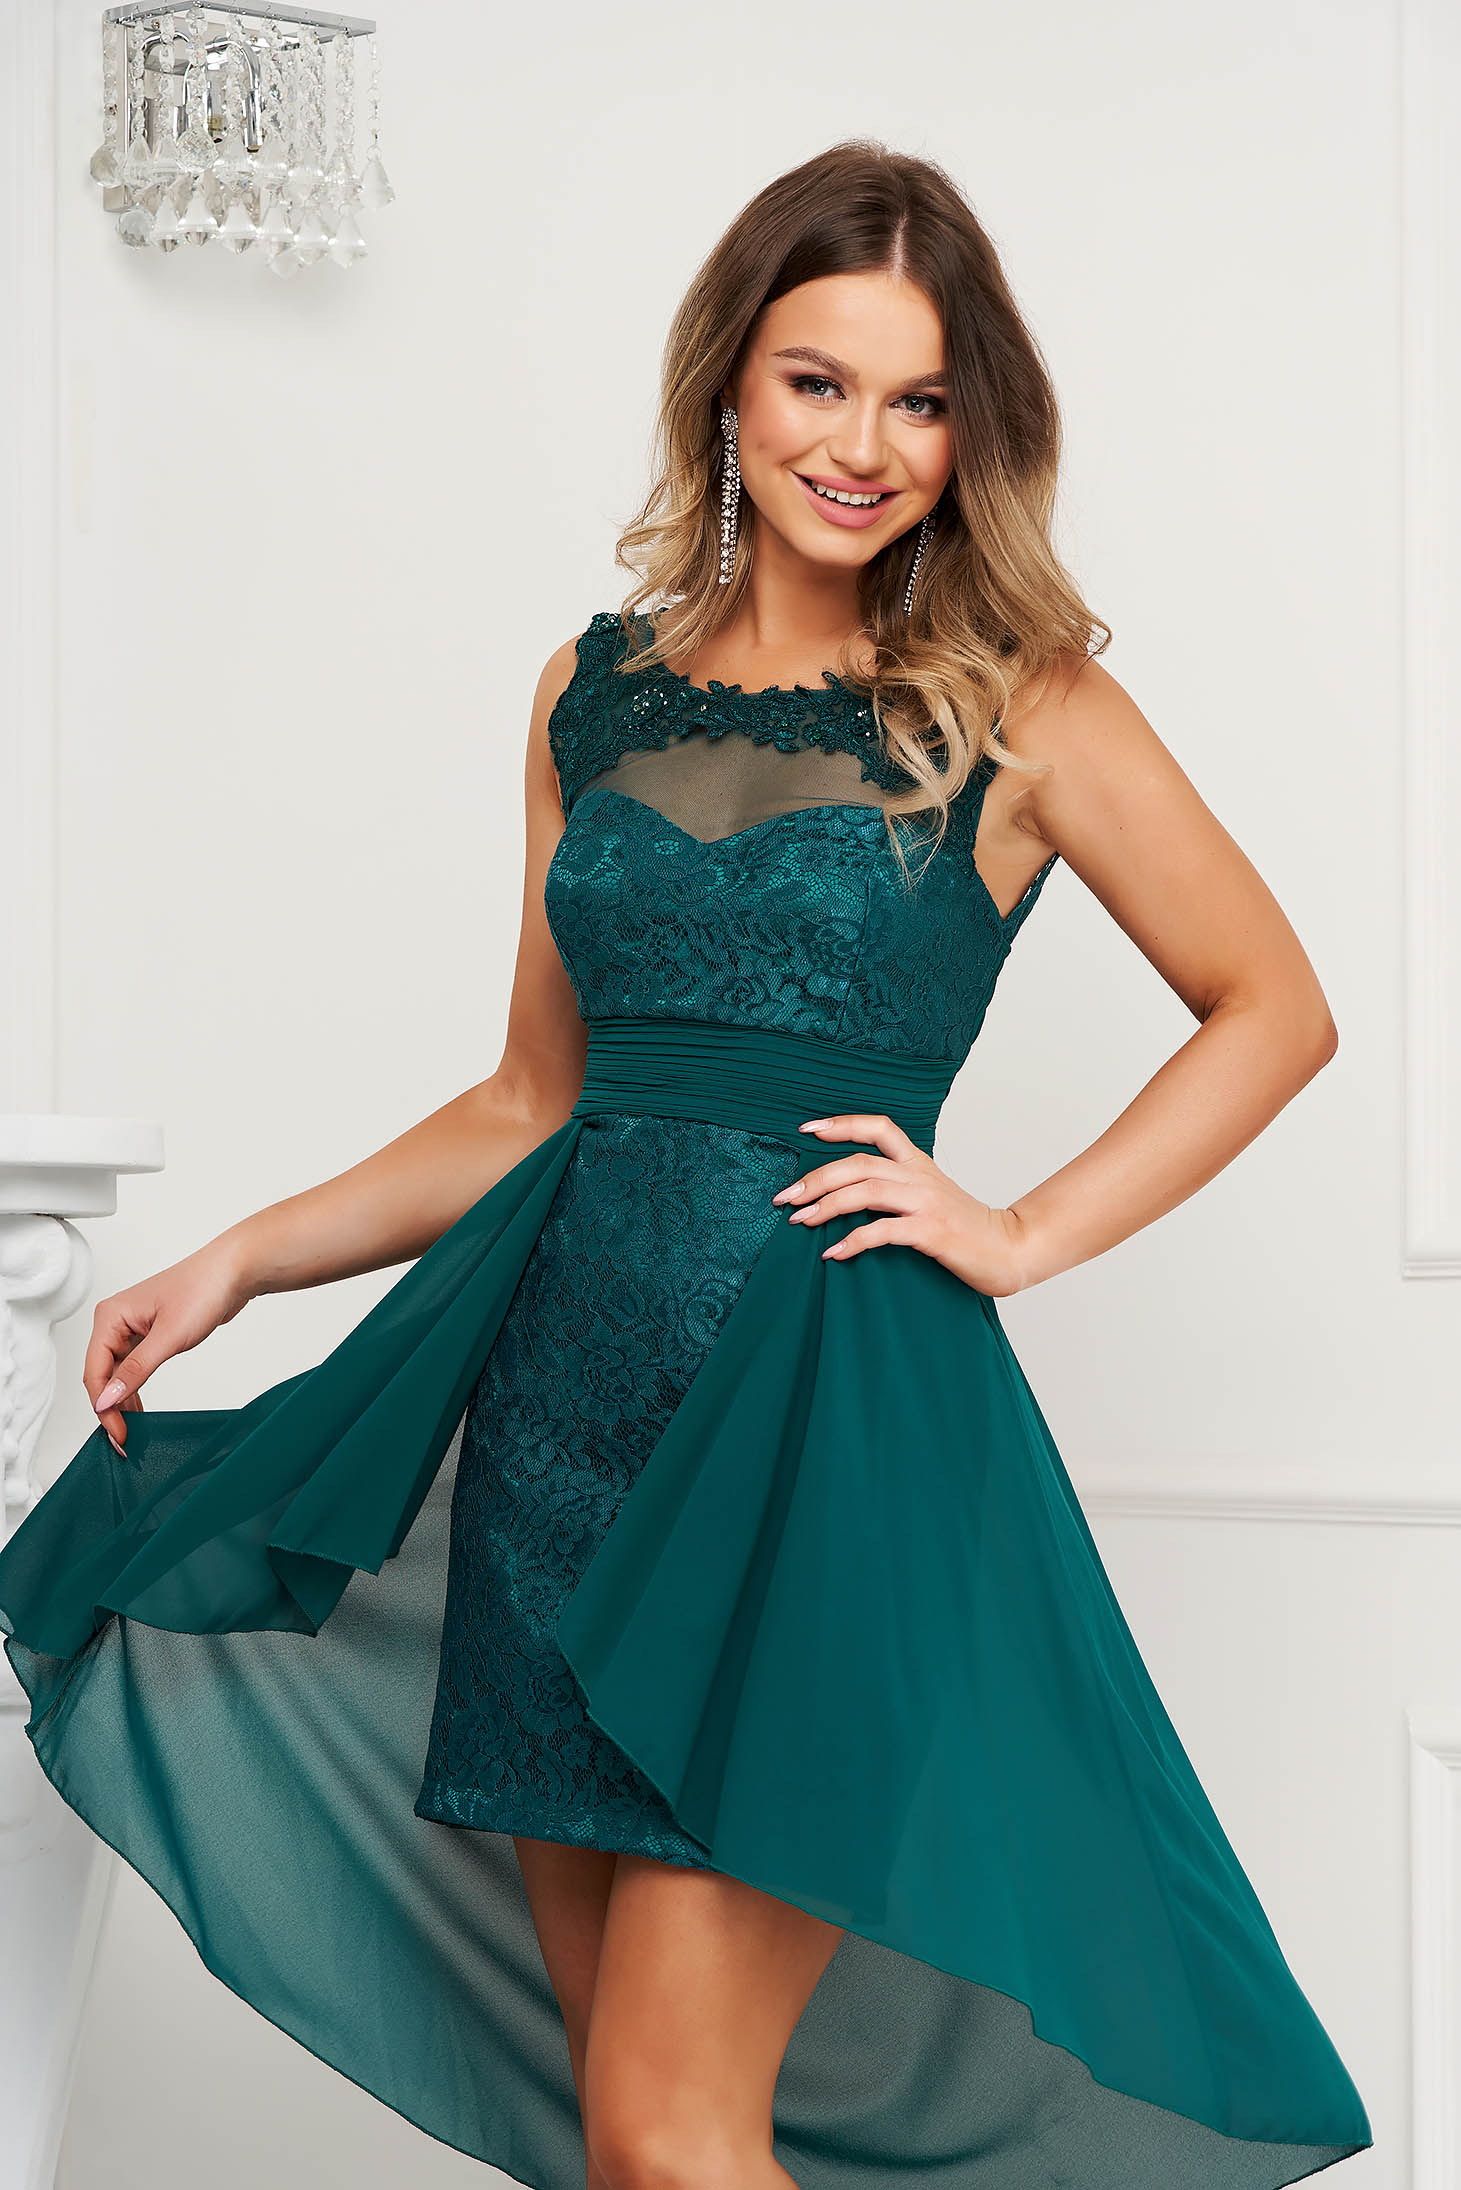 Green dress occasional with lace details voile details pencil